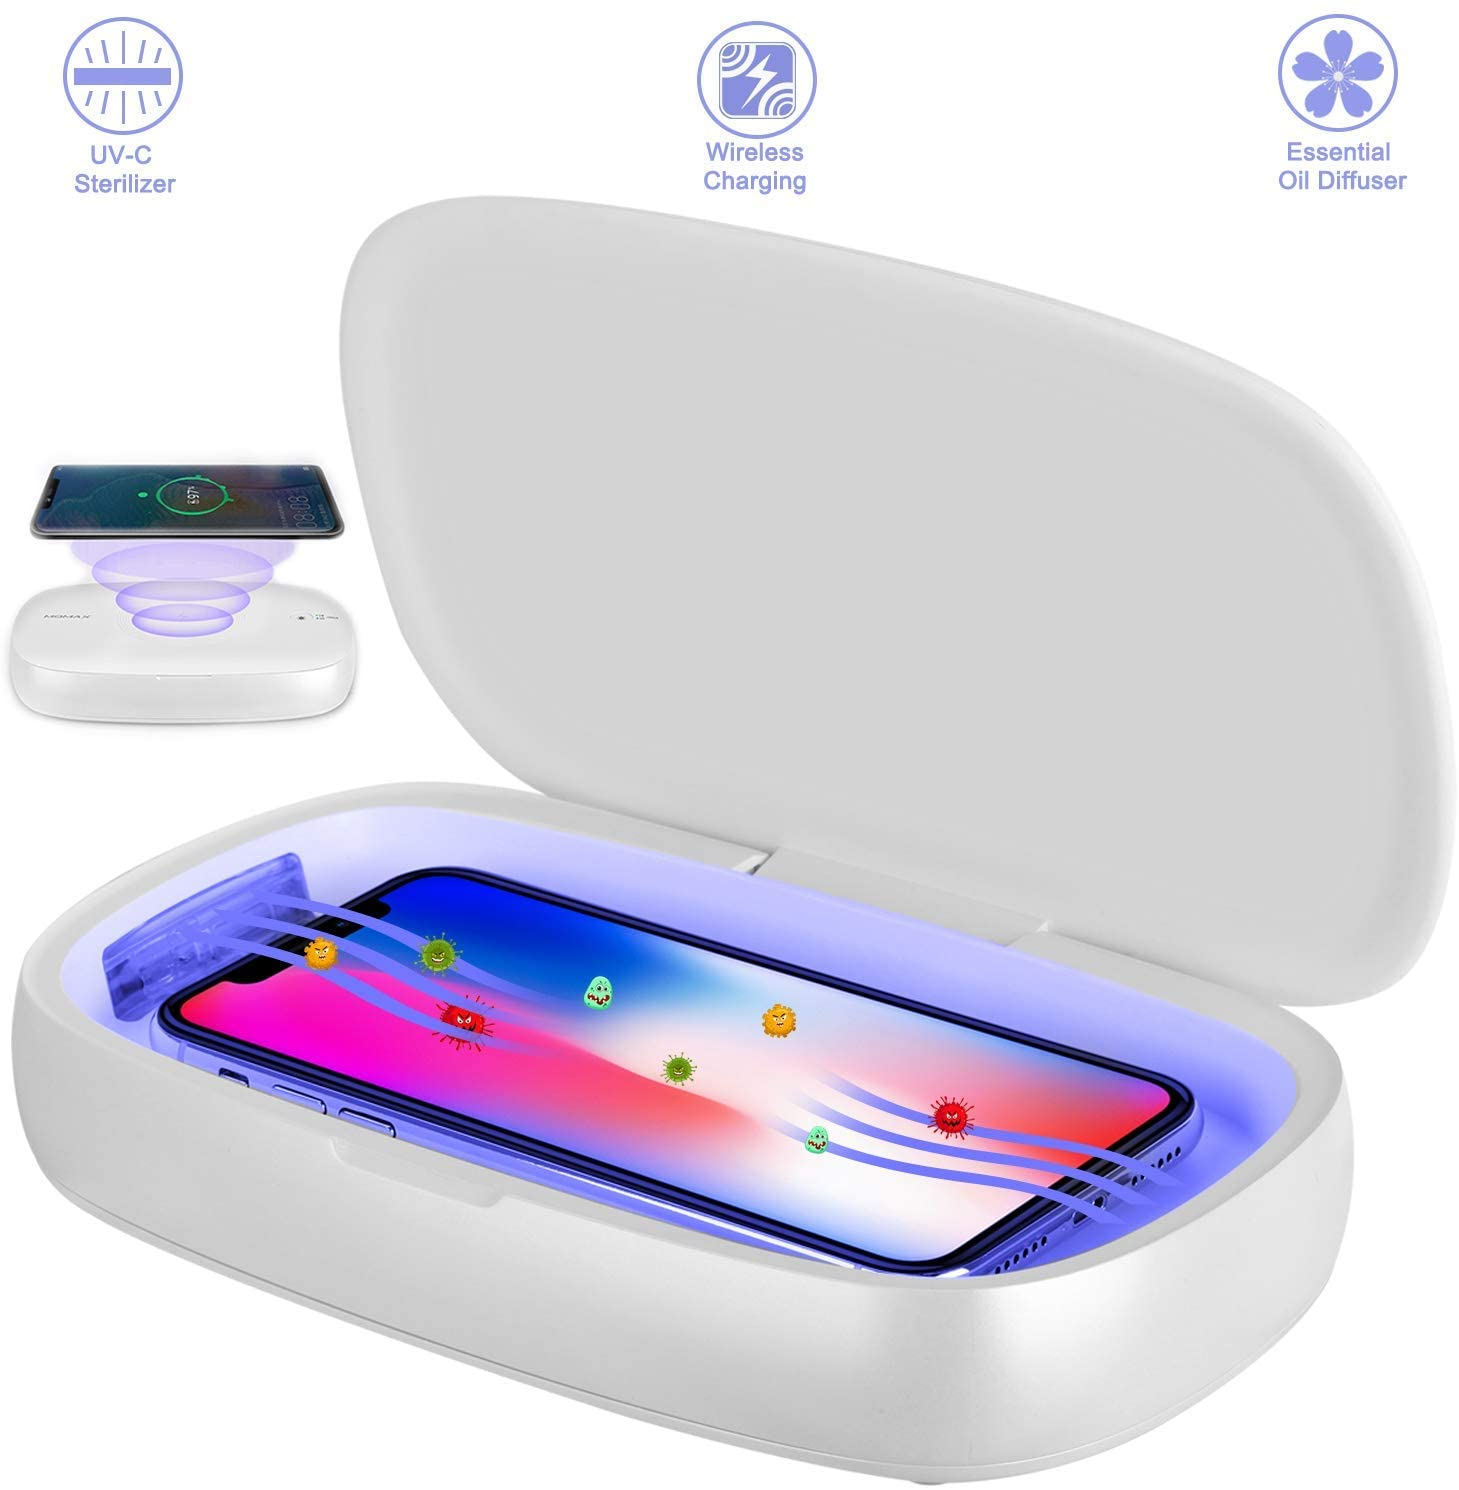 Powerful Phone Sanitizer UV Lights Destroy 99.9/% of Bacteria Quickly While Our Wireless Charging Station Keeps Your Phone Charged CHRGR UV Cell Phone Sanitizer Sterilizer and Wireless Charger